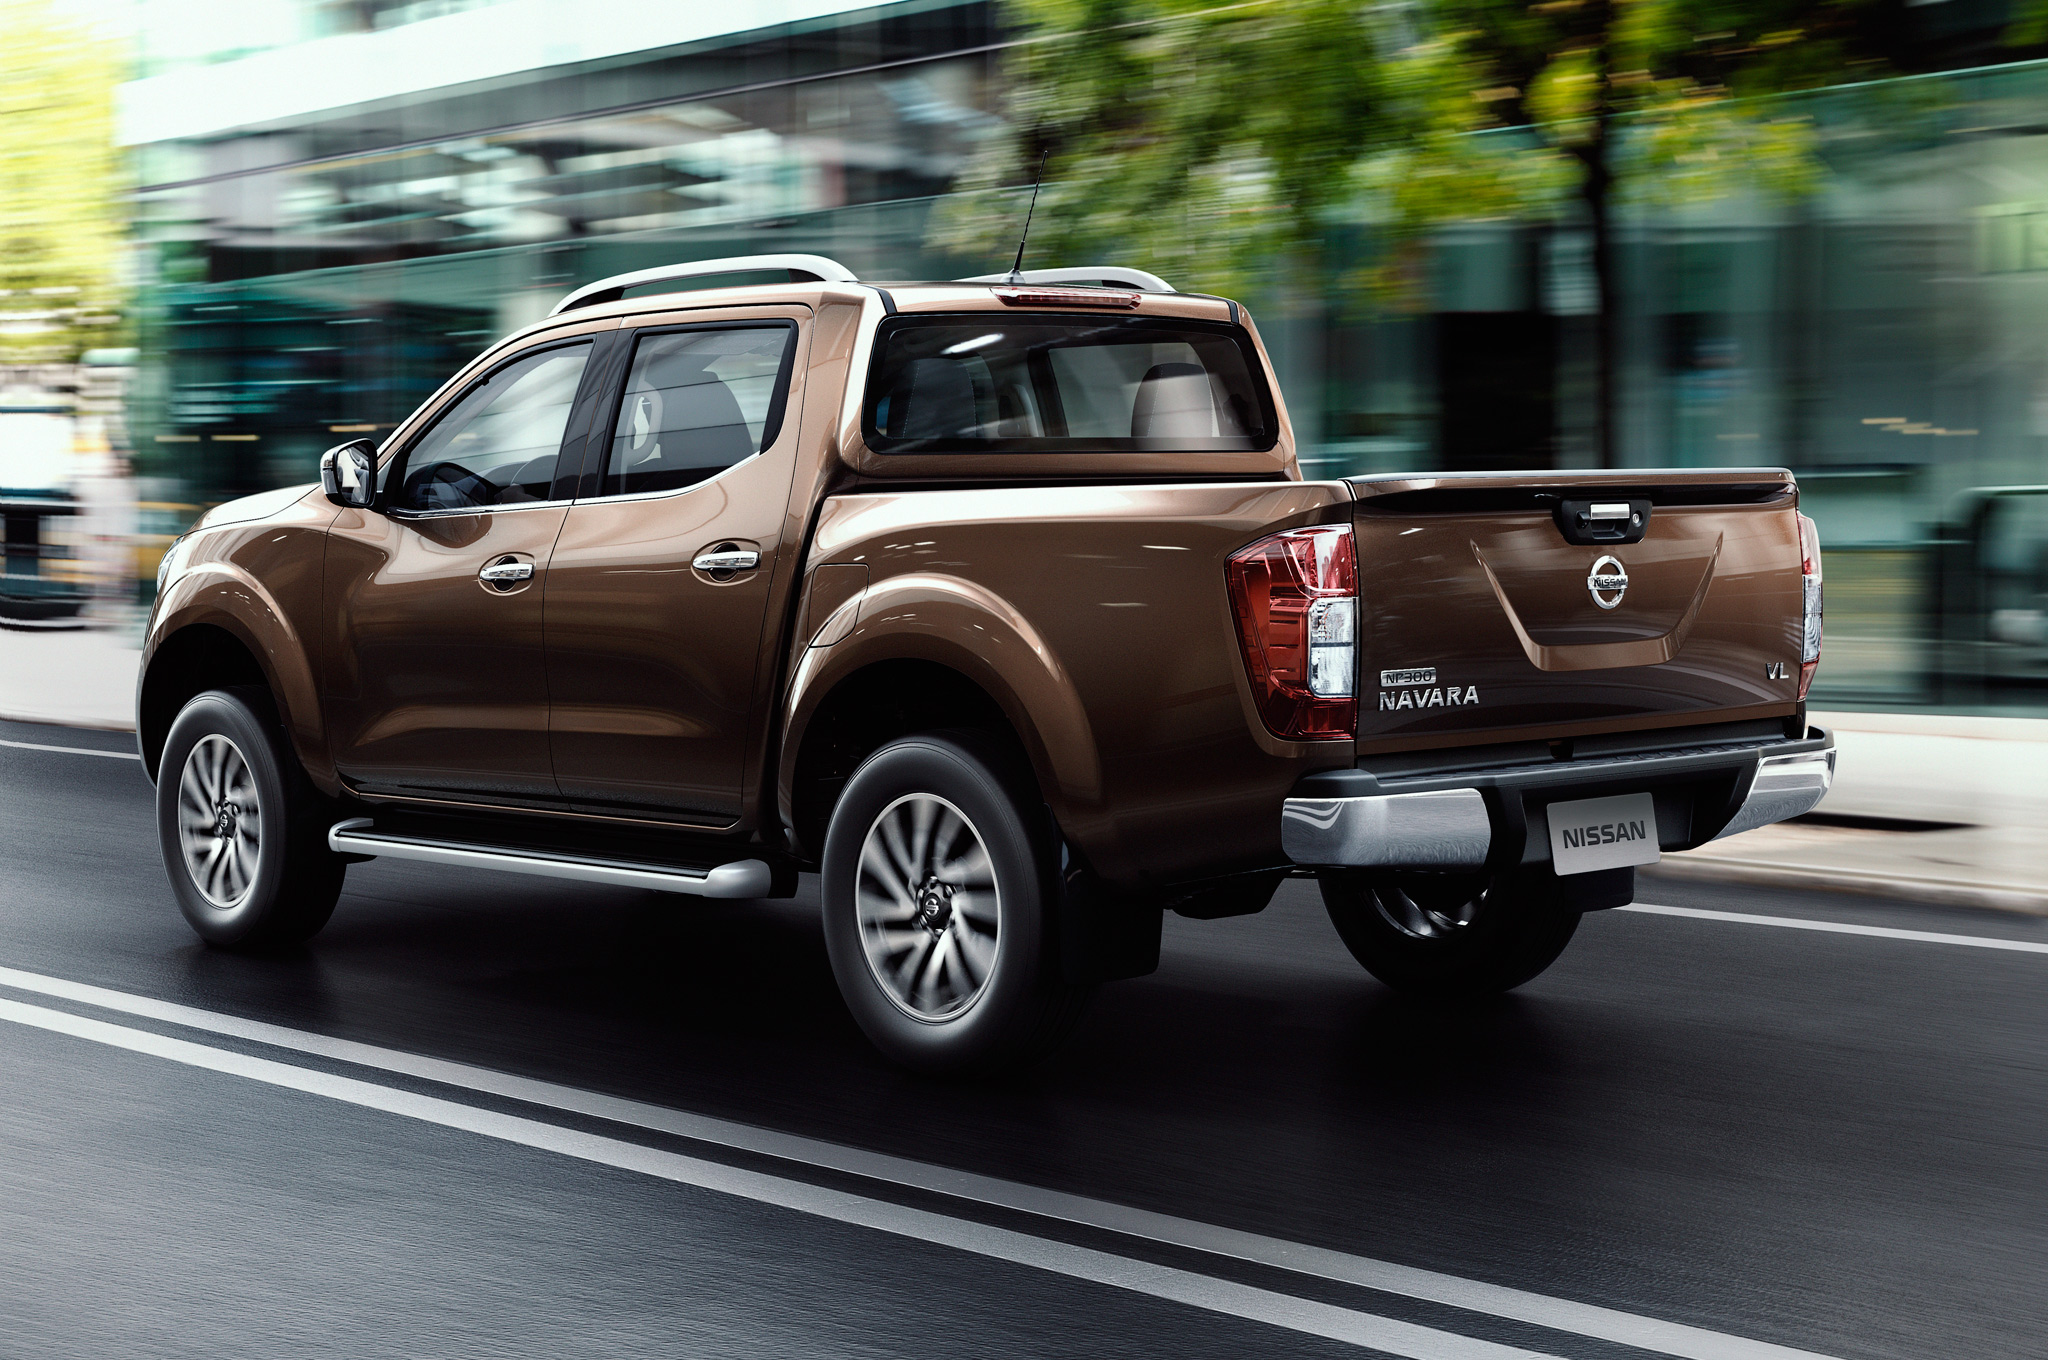 2015 All New Nissan Np300 Navara Rear Side Preview (View 6 of 6)